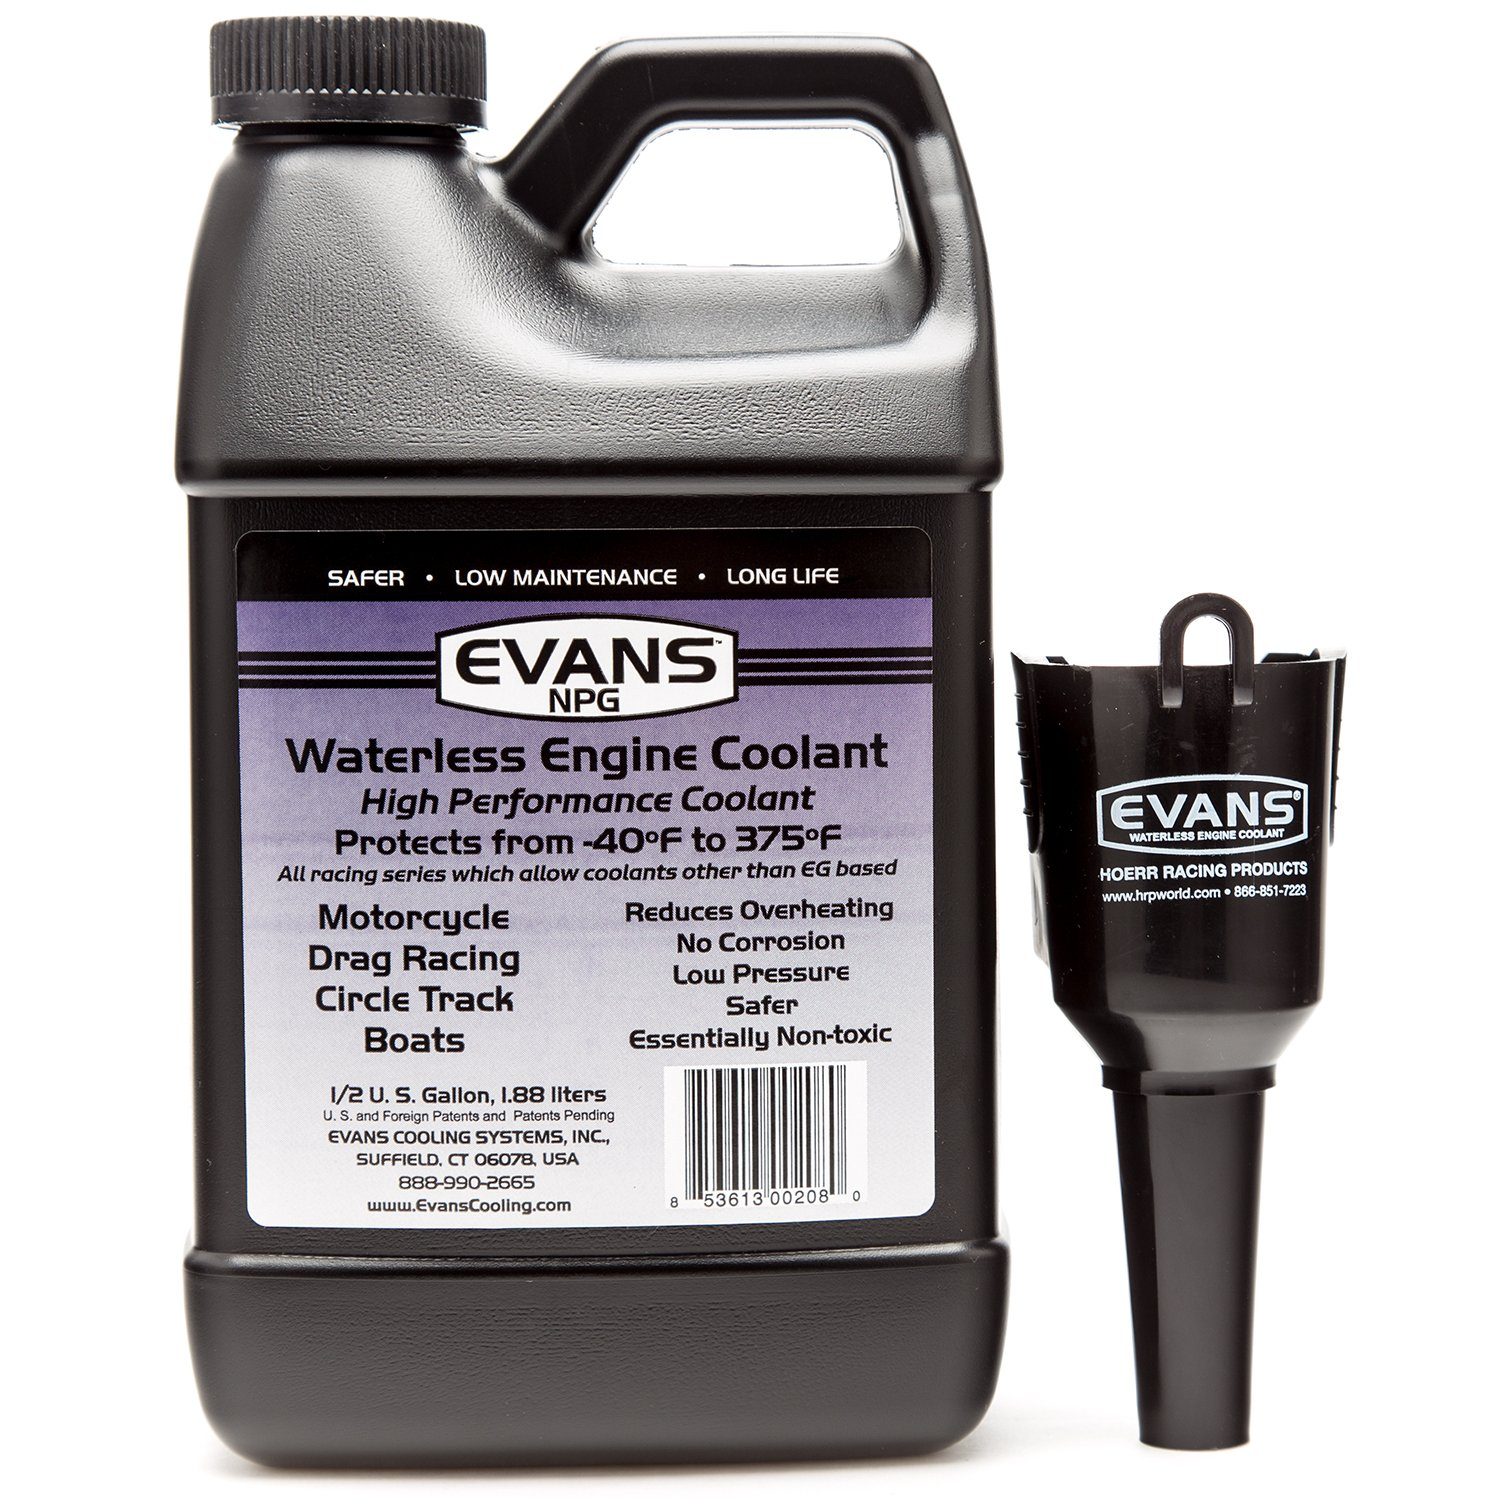 EVANS Coolant EC10064 Waterless Engine Coolant, 64 fl. oz. with Funnel by EVANS